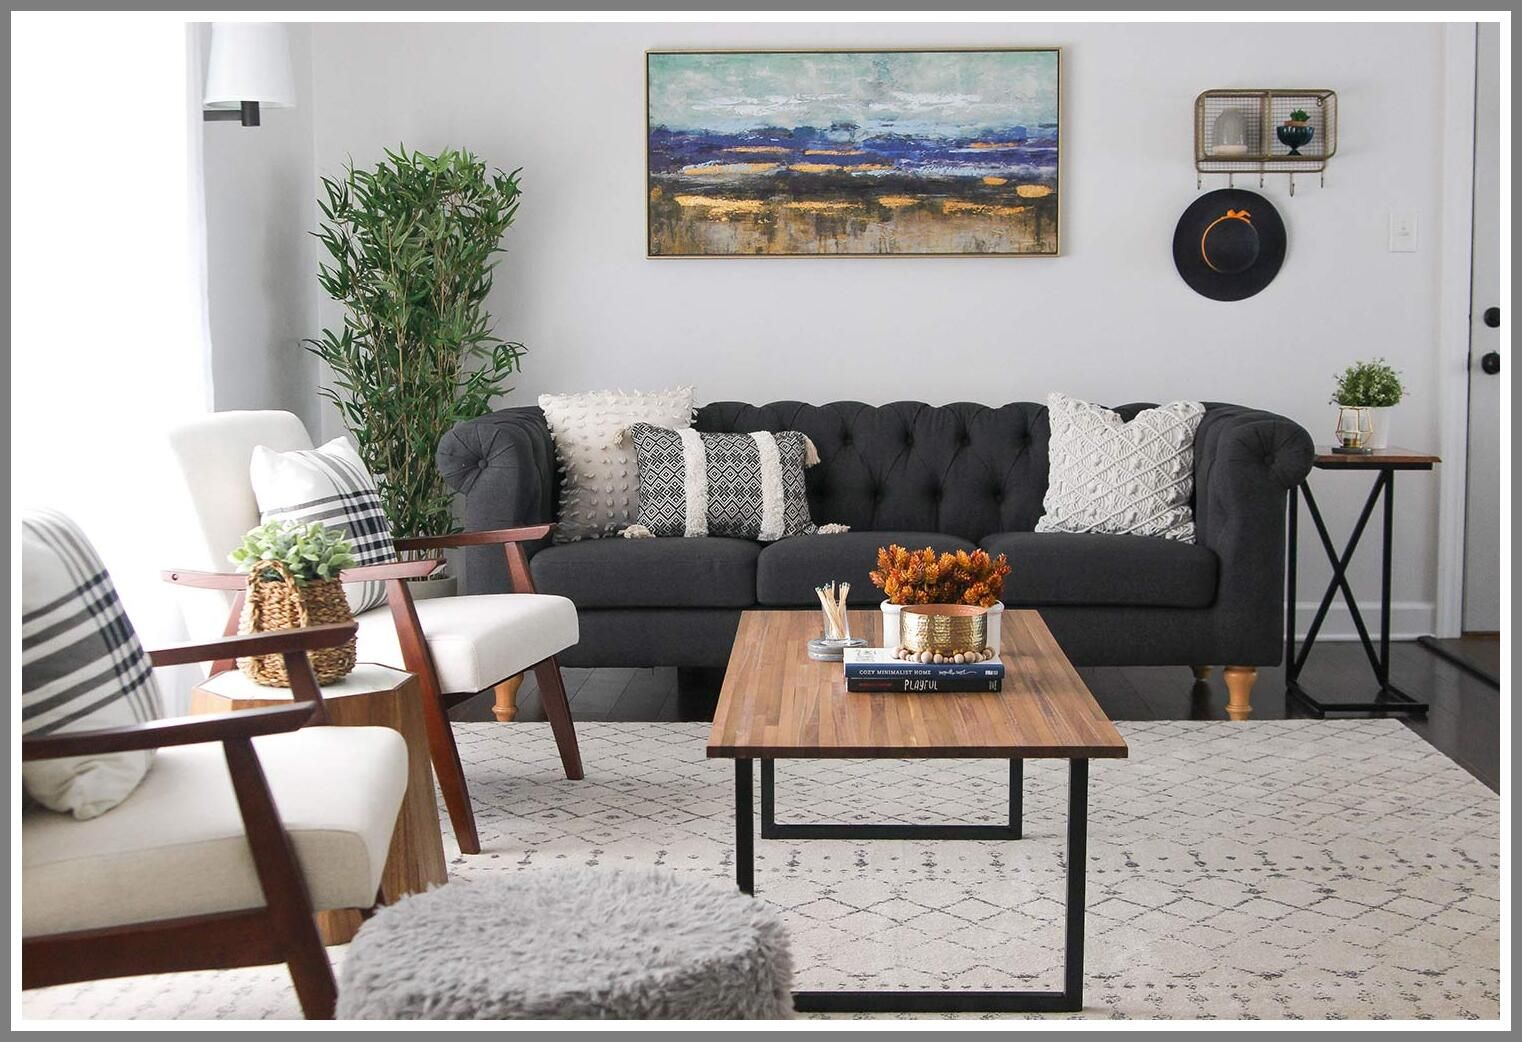 49 Reference Of Small Living Room Interior Design Philippine